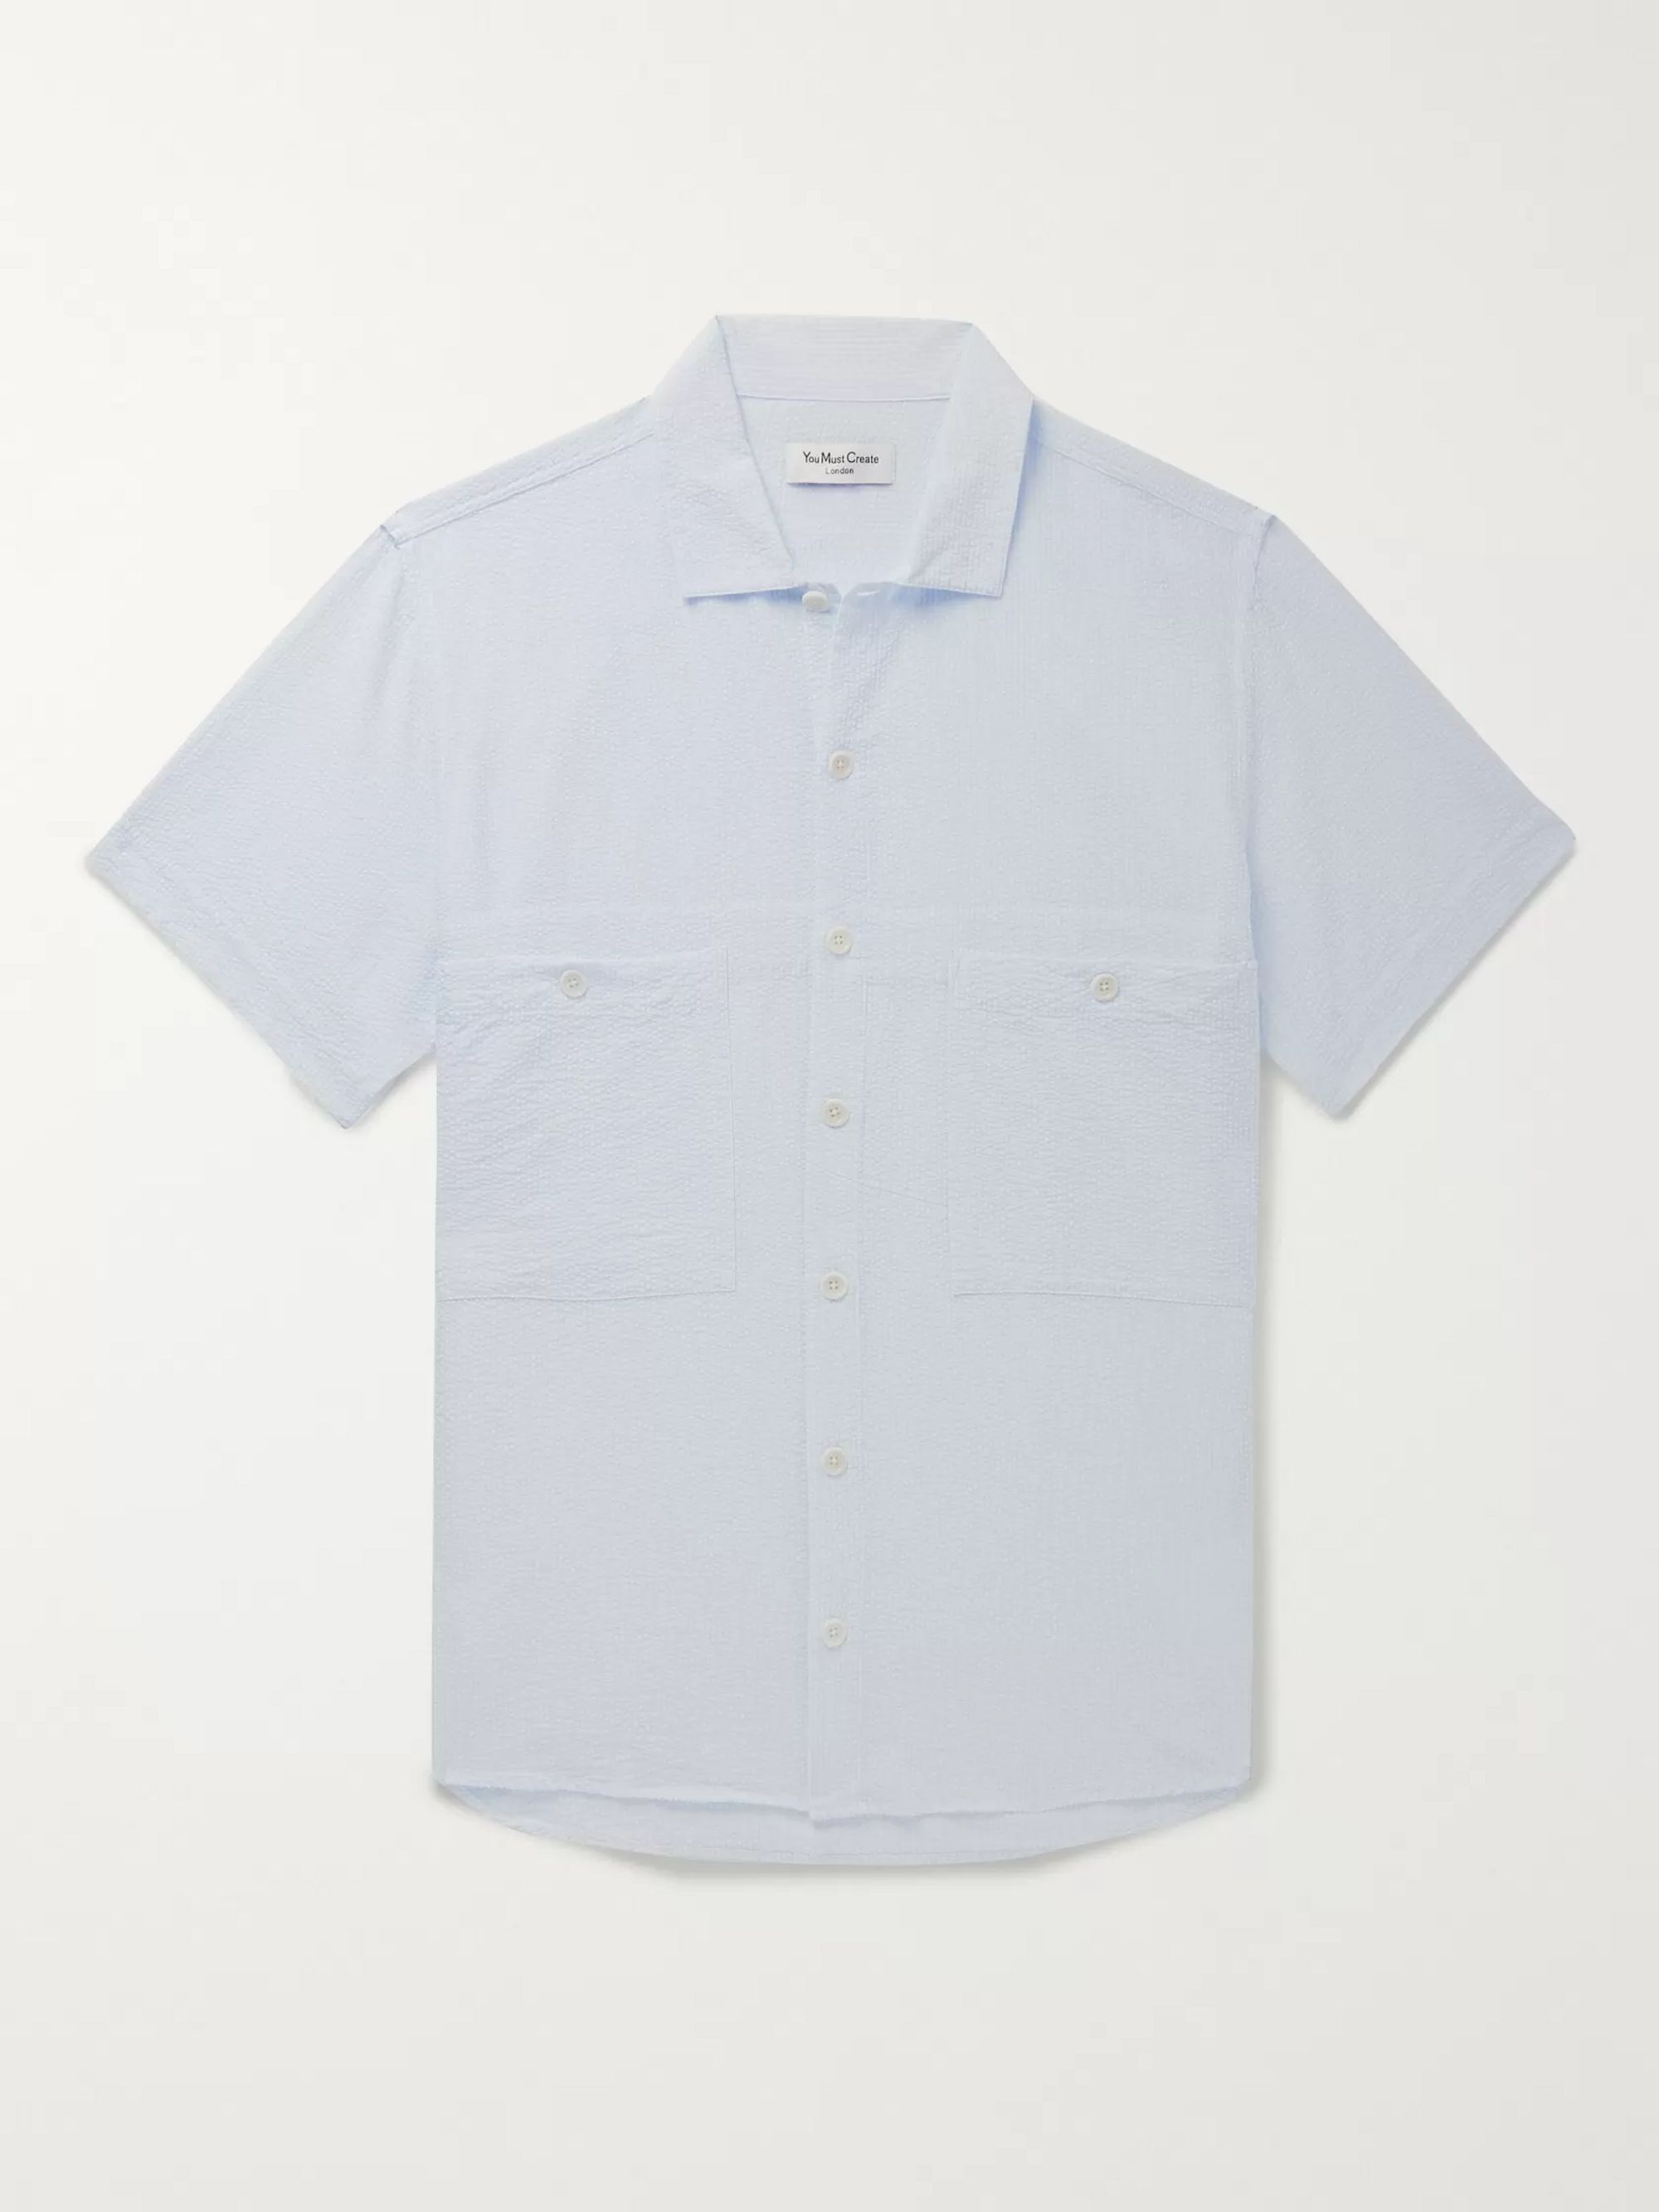 YMC Striped Seersucker Shirt